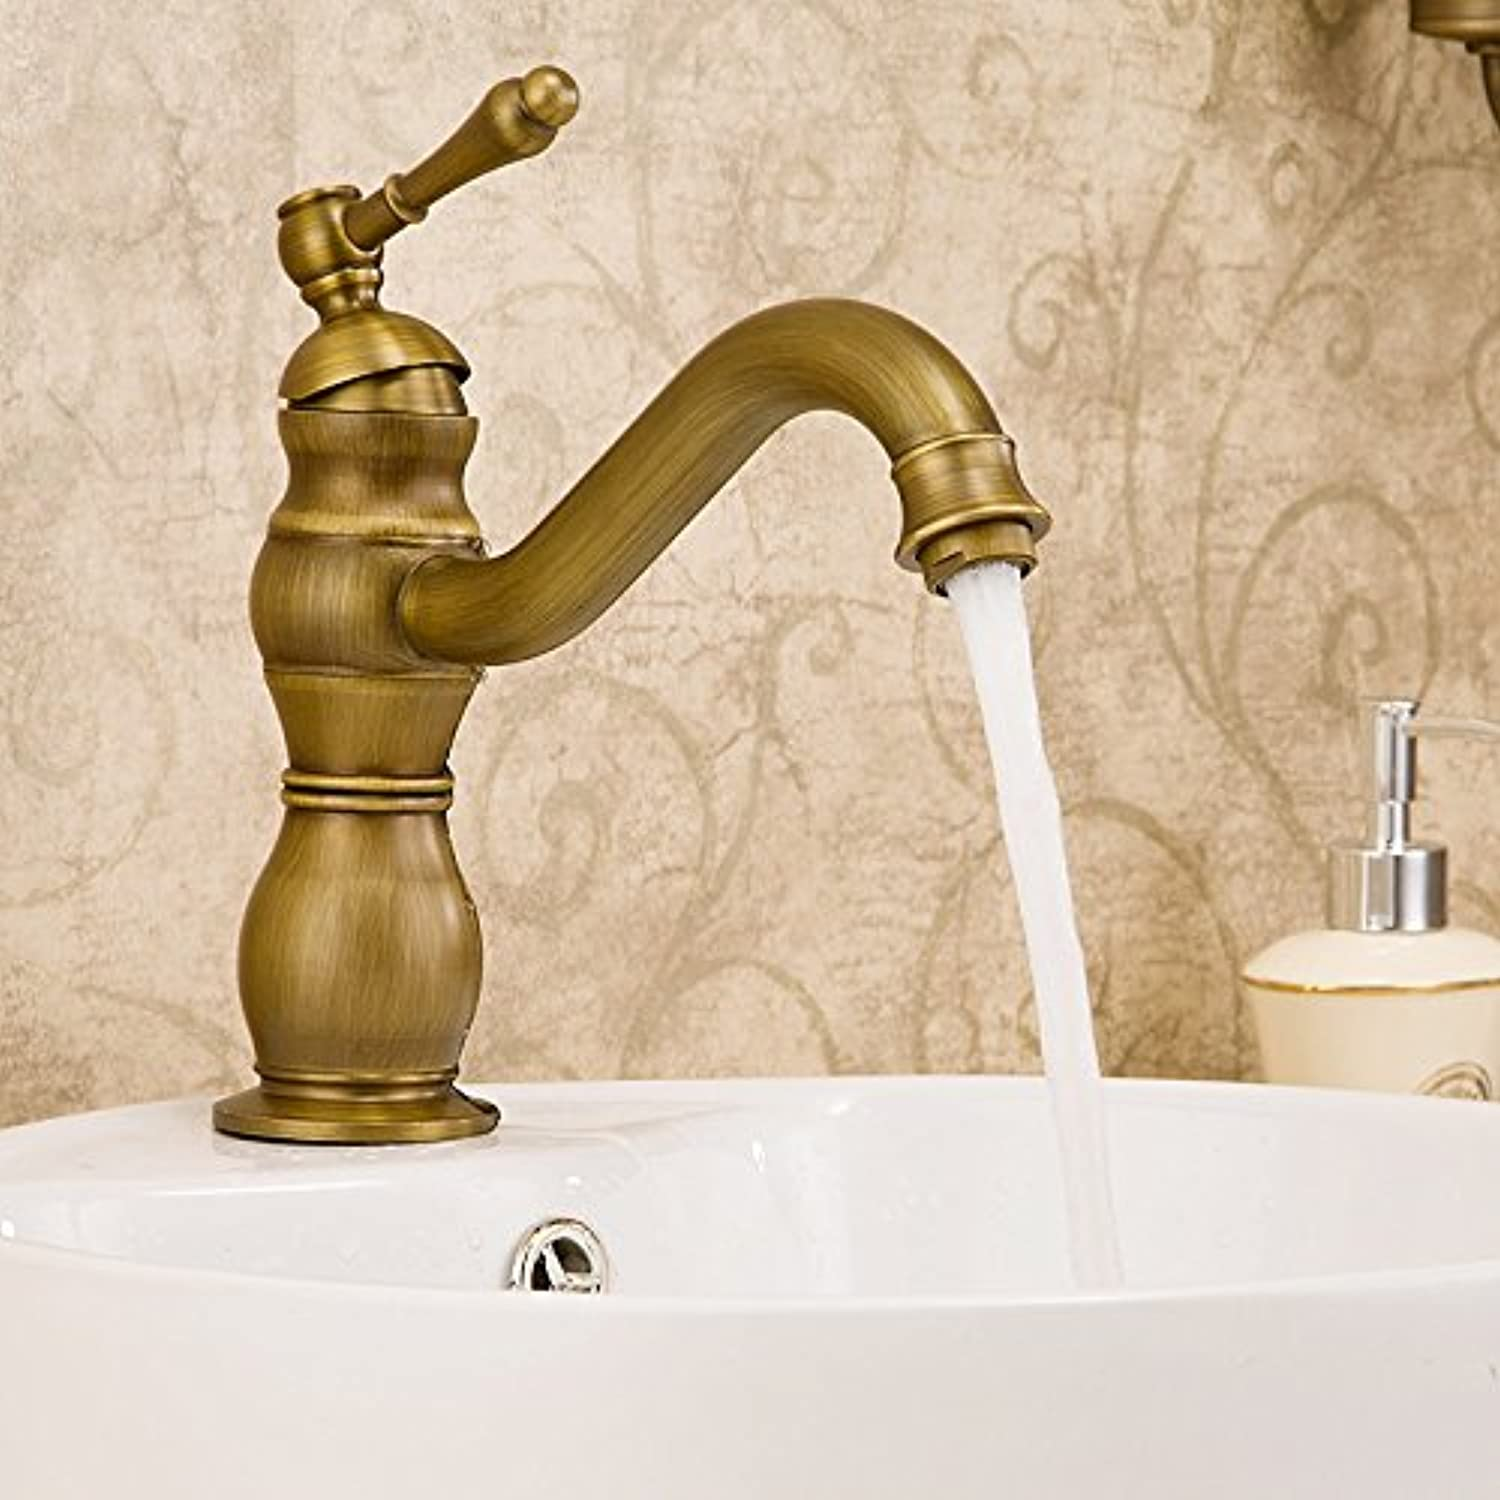 Accessori bagno ZHFC ZHFC Copper single redating faucet cold and hot mixed faucet European bathroom antique single hole washbasin faucet